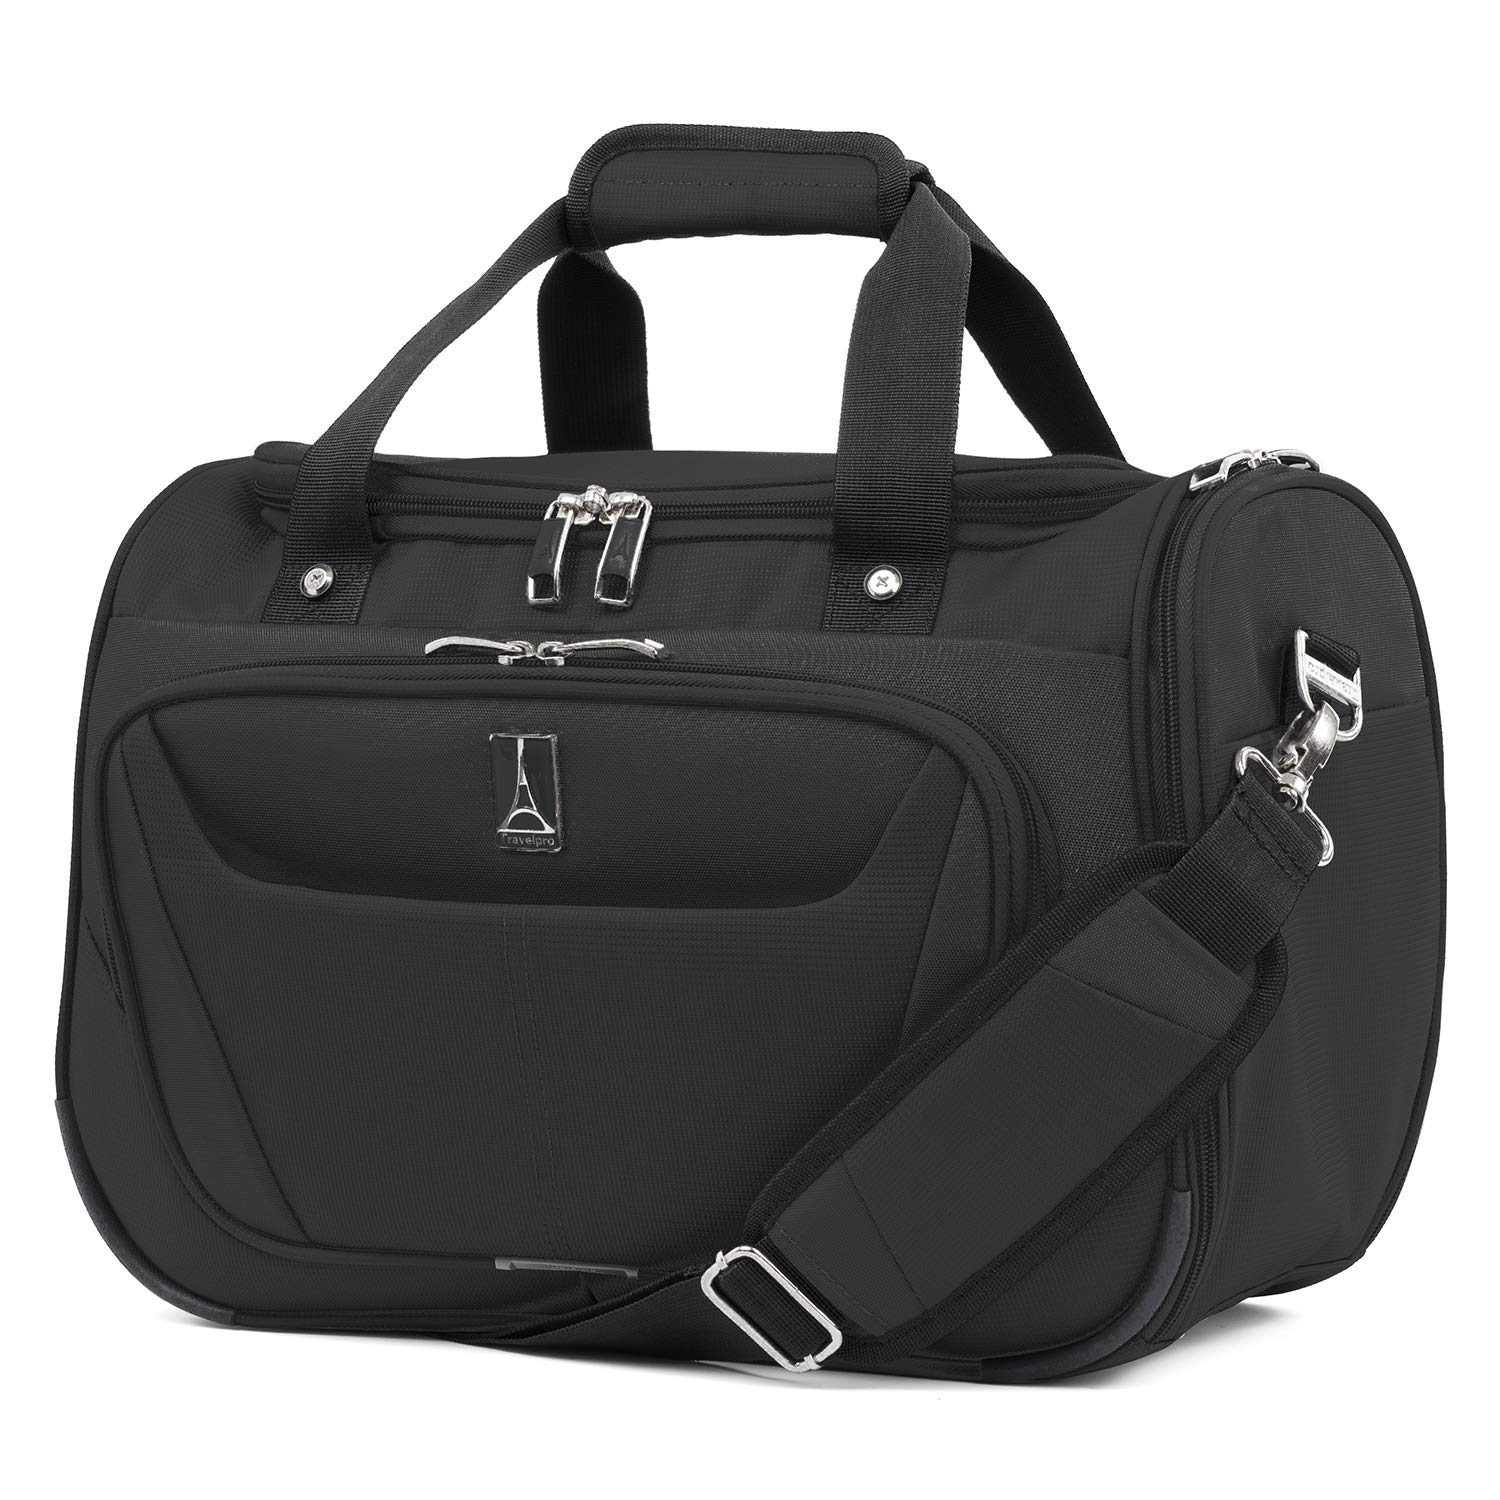 Travelpro Luggage Maxlite 5 18'' Lightweight Carry-on Under Seat Tote Travel, Black, One Size by Travelpro